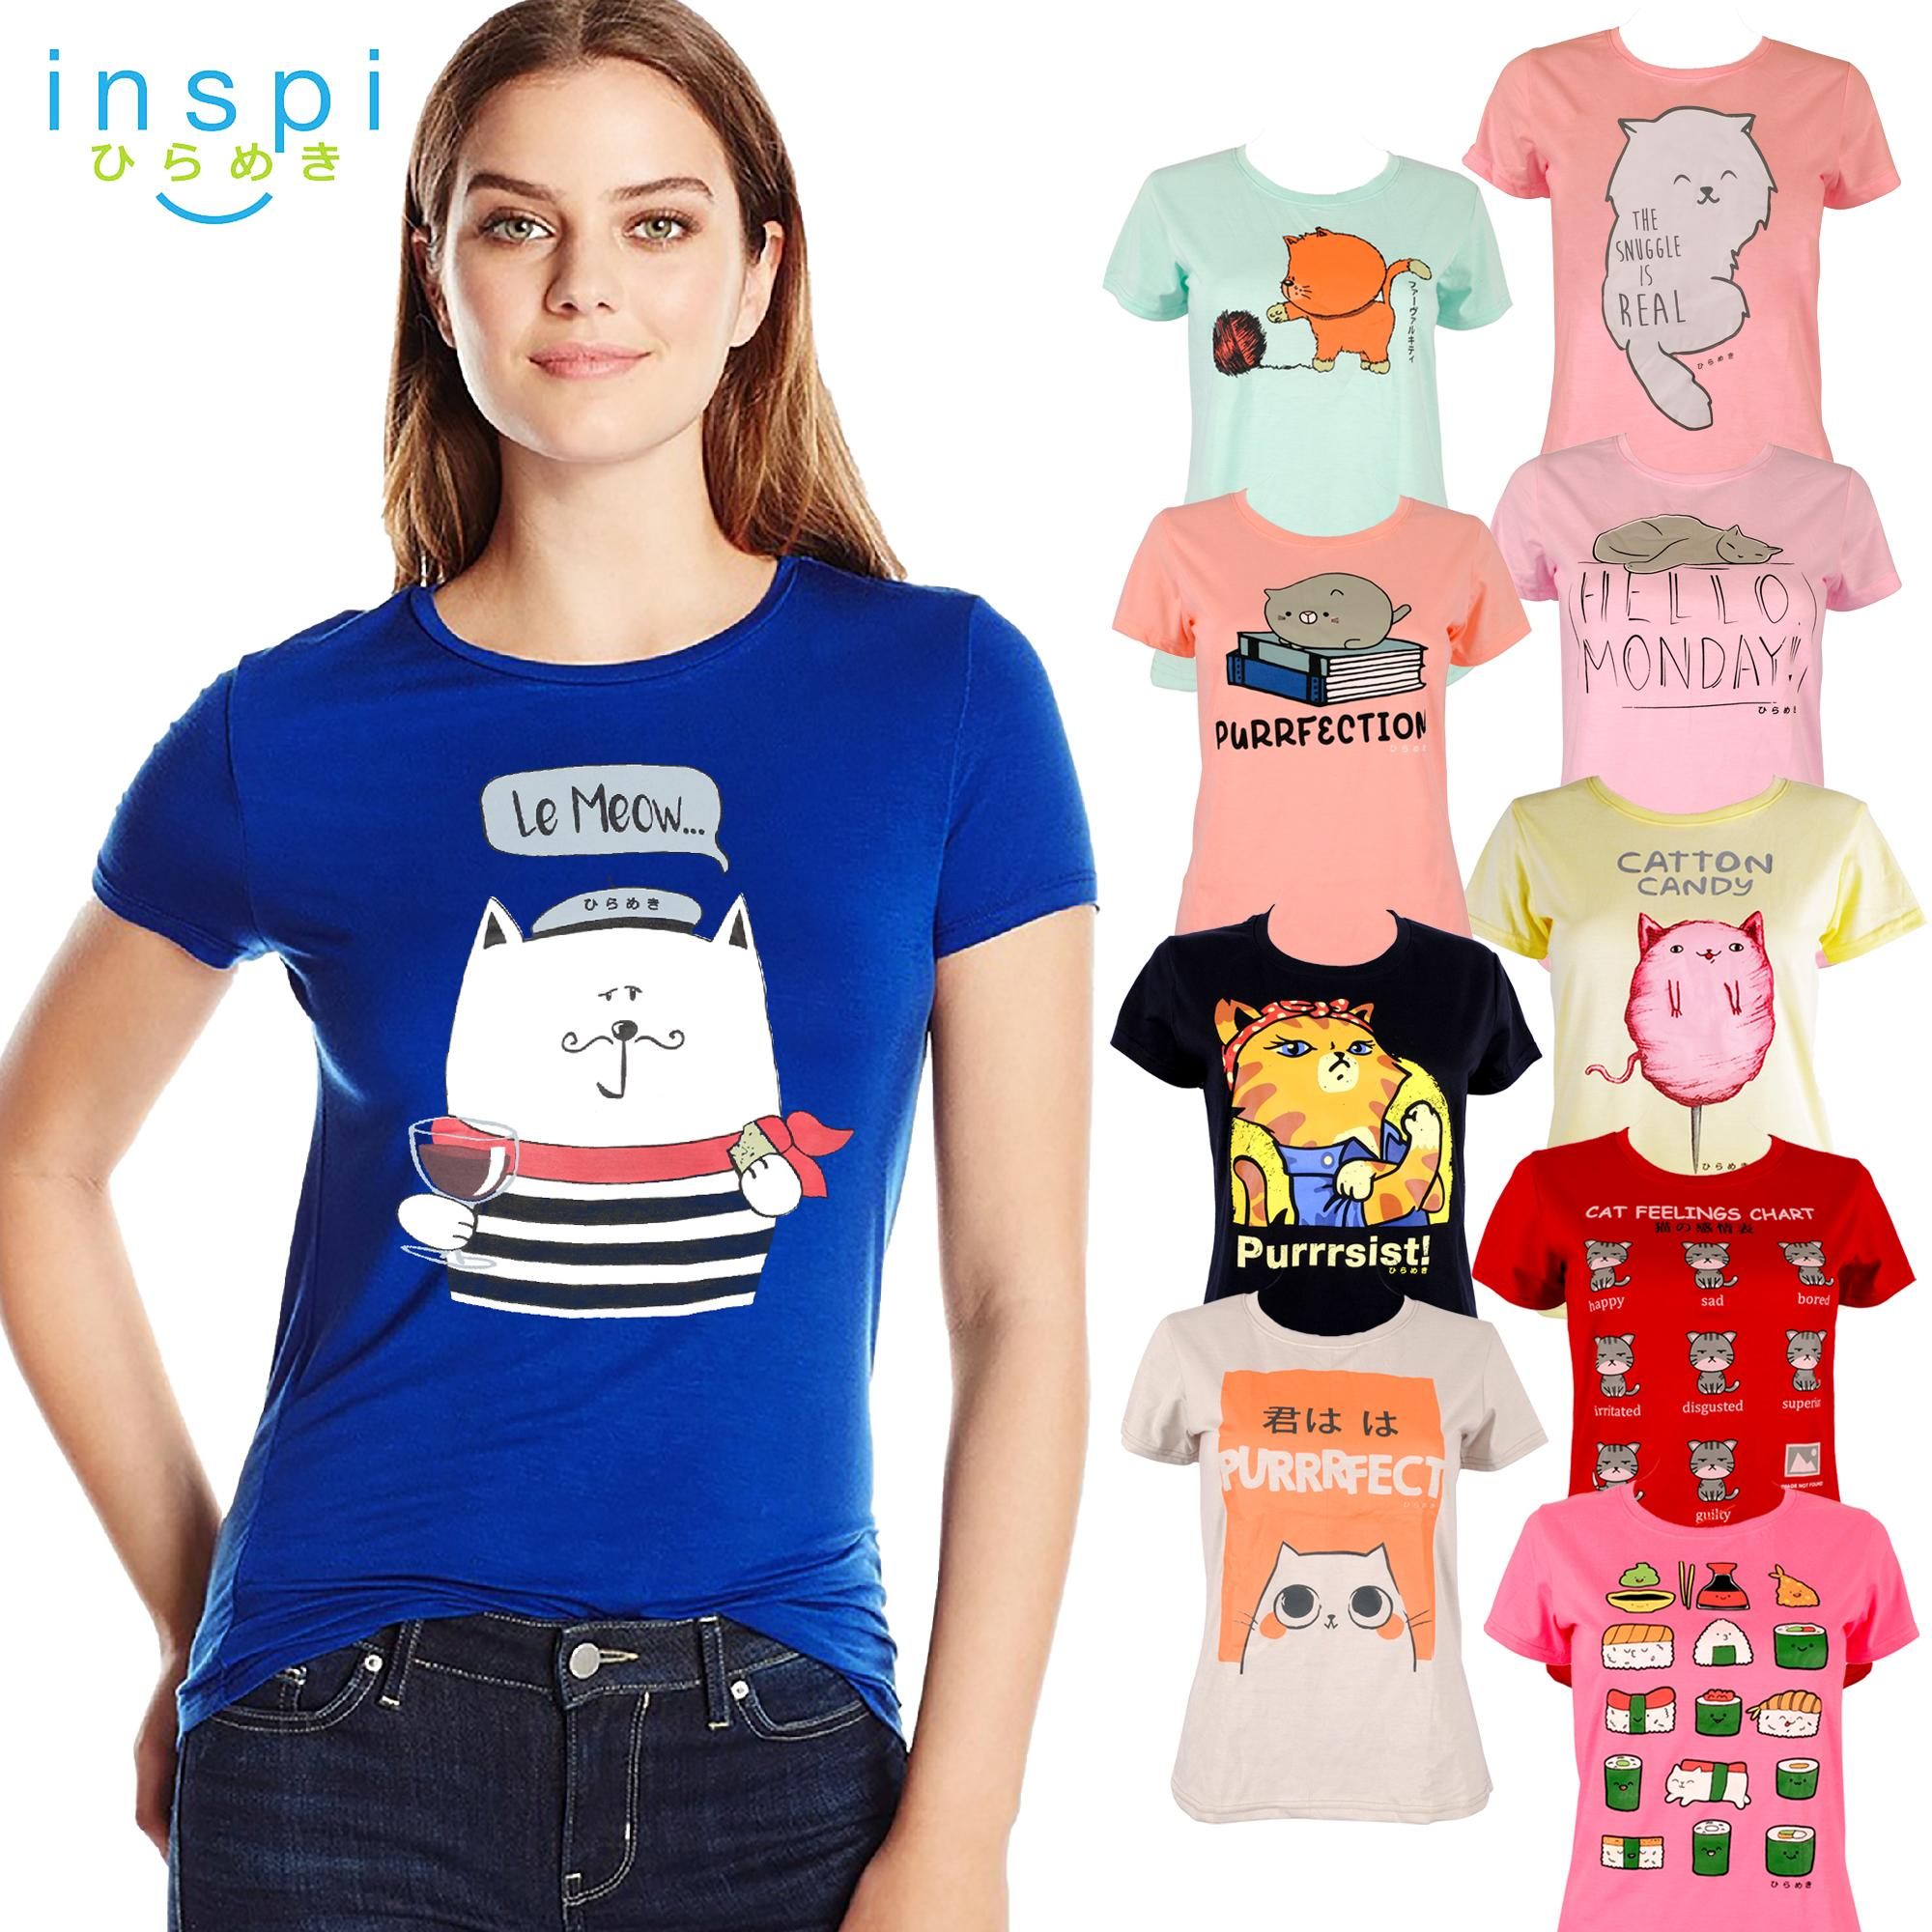 2dfe74097f08 INSPI Tees Ladies Neko Collection tshirt printed graphic tee Ladies t shirt  shirts women tshirts for